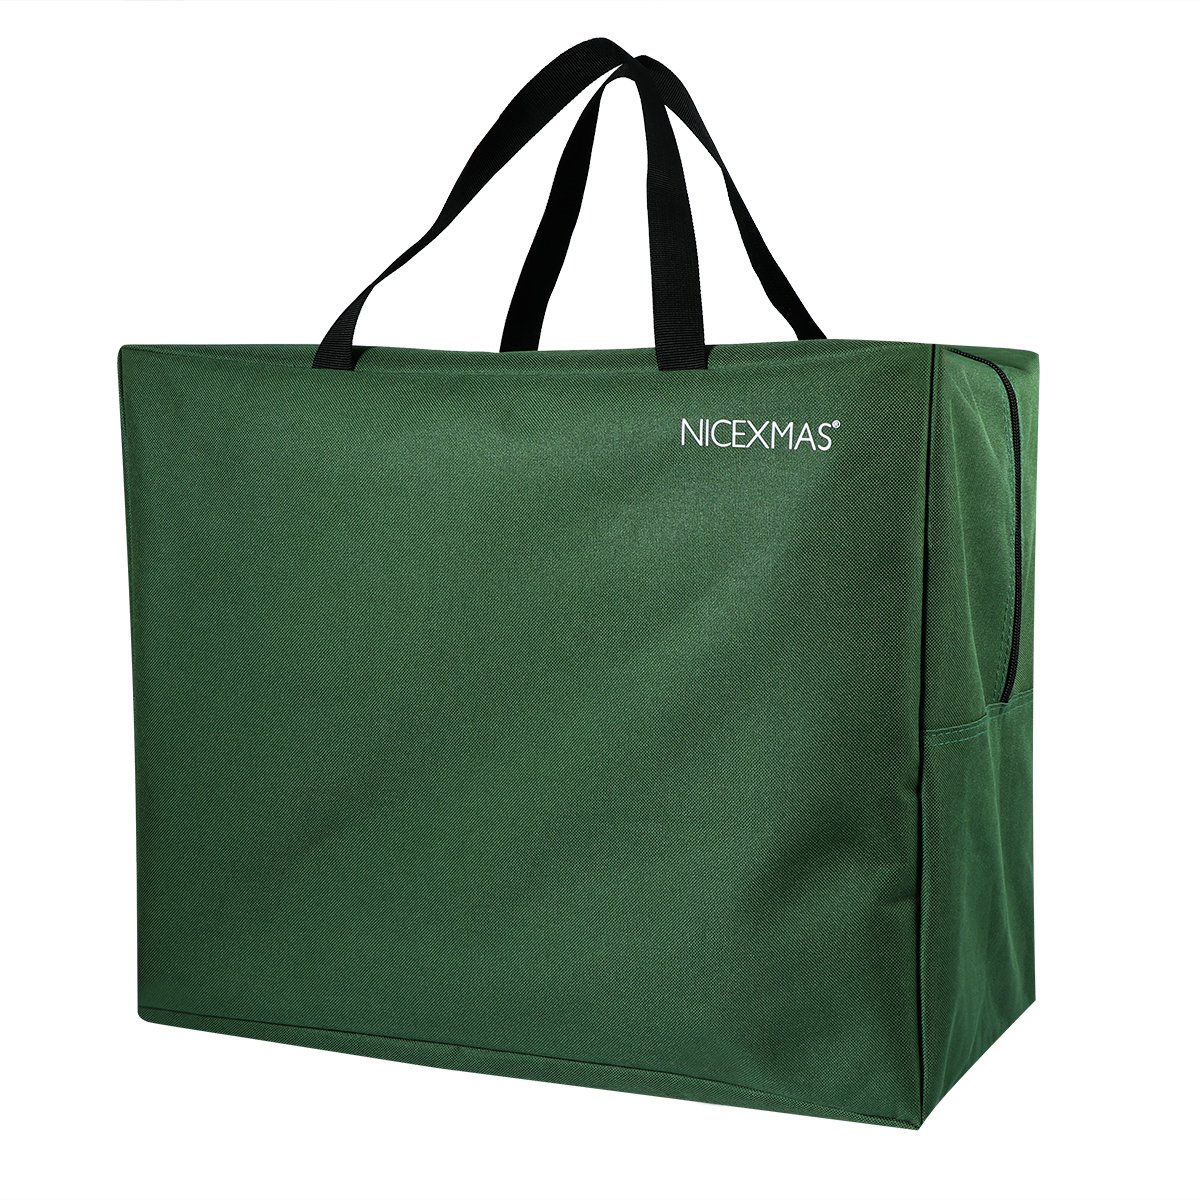 Christmas Tree Storage Bag Jumbo Storage Bags with Carry Handle for Christmas Ornament Wreath Baubles Lights (green, 462538CM)